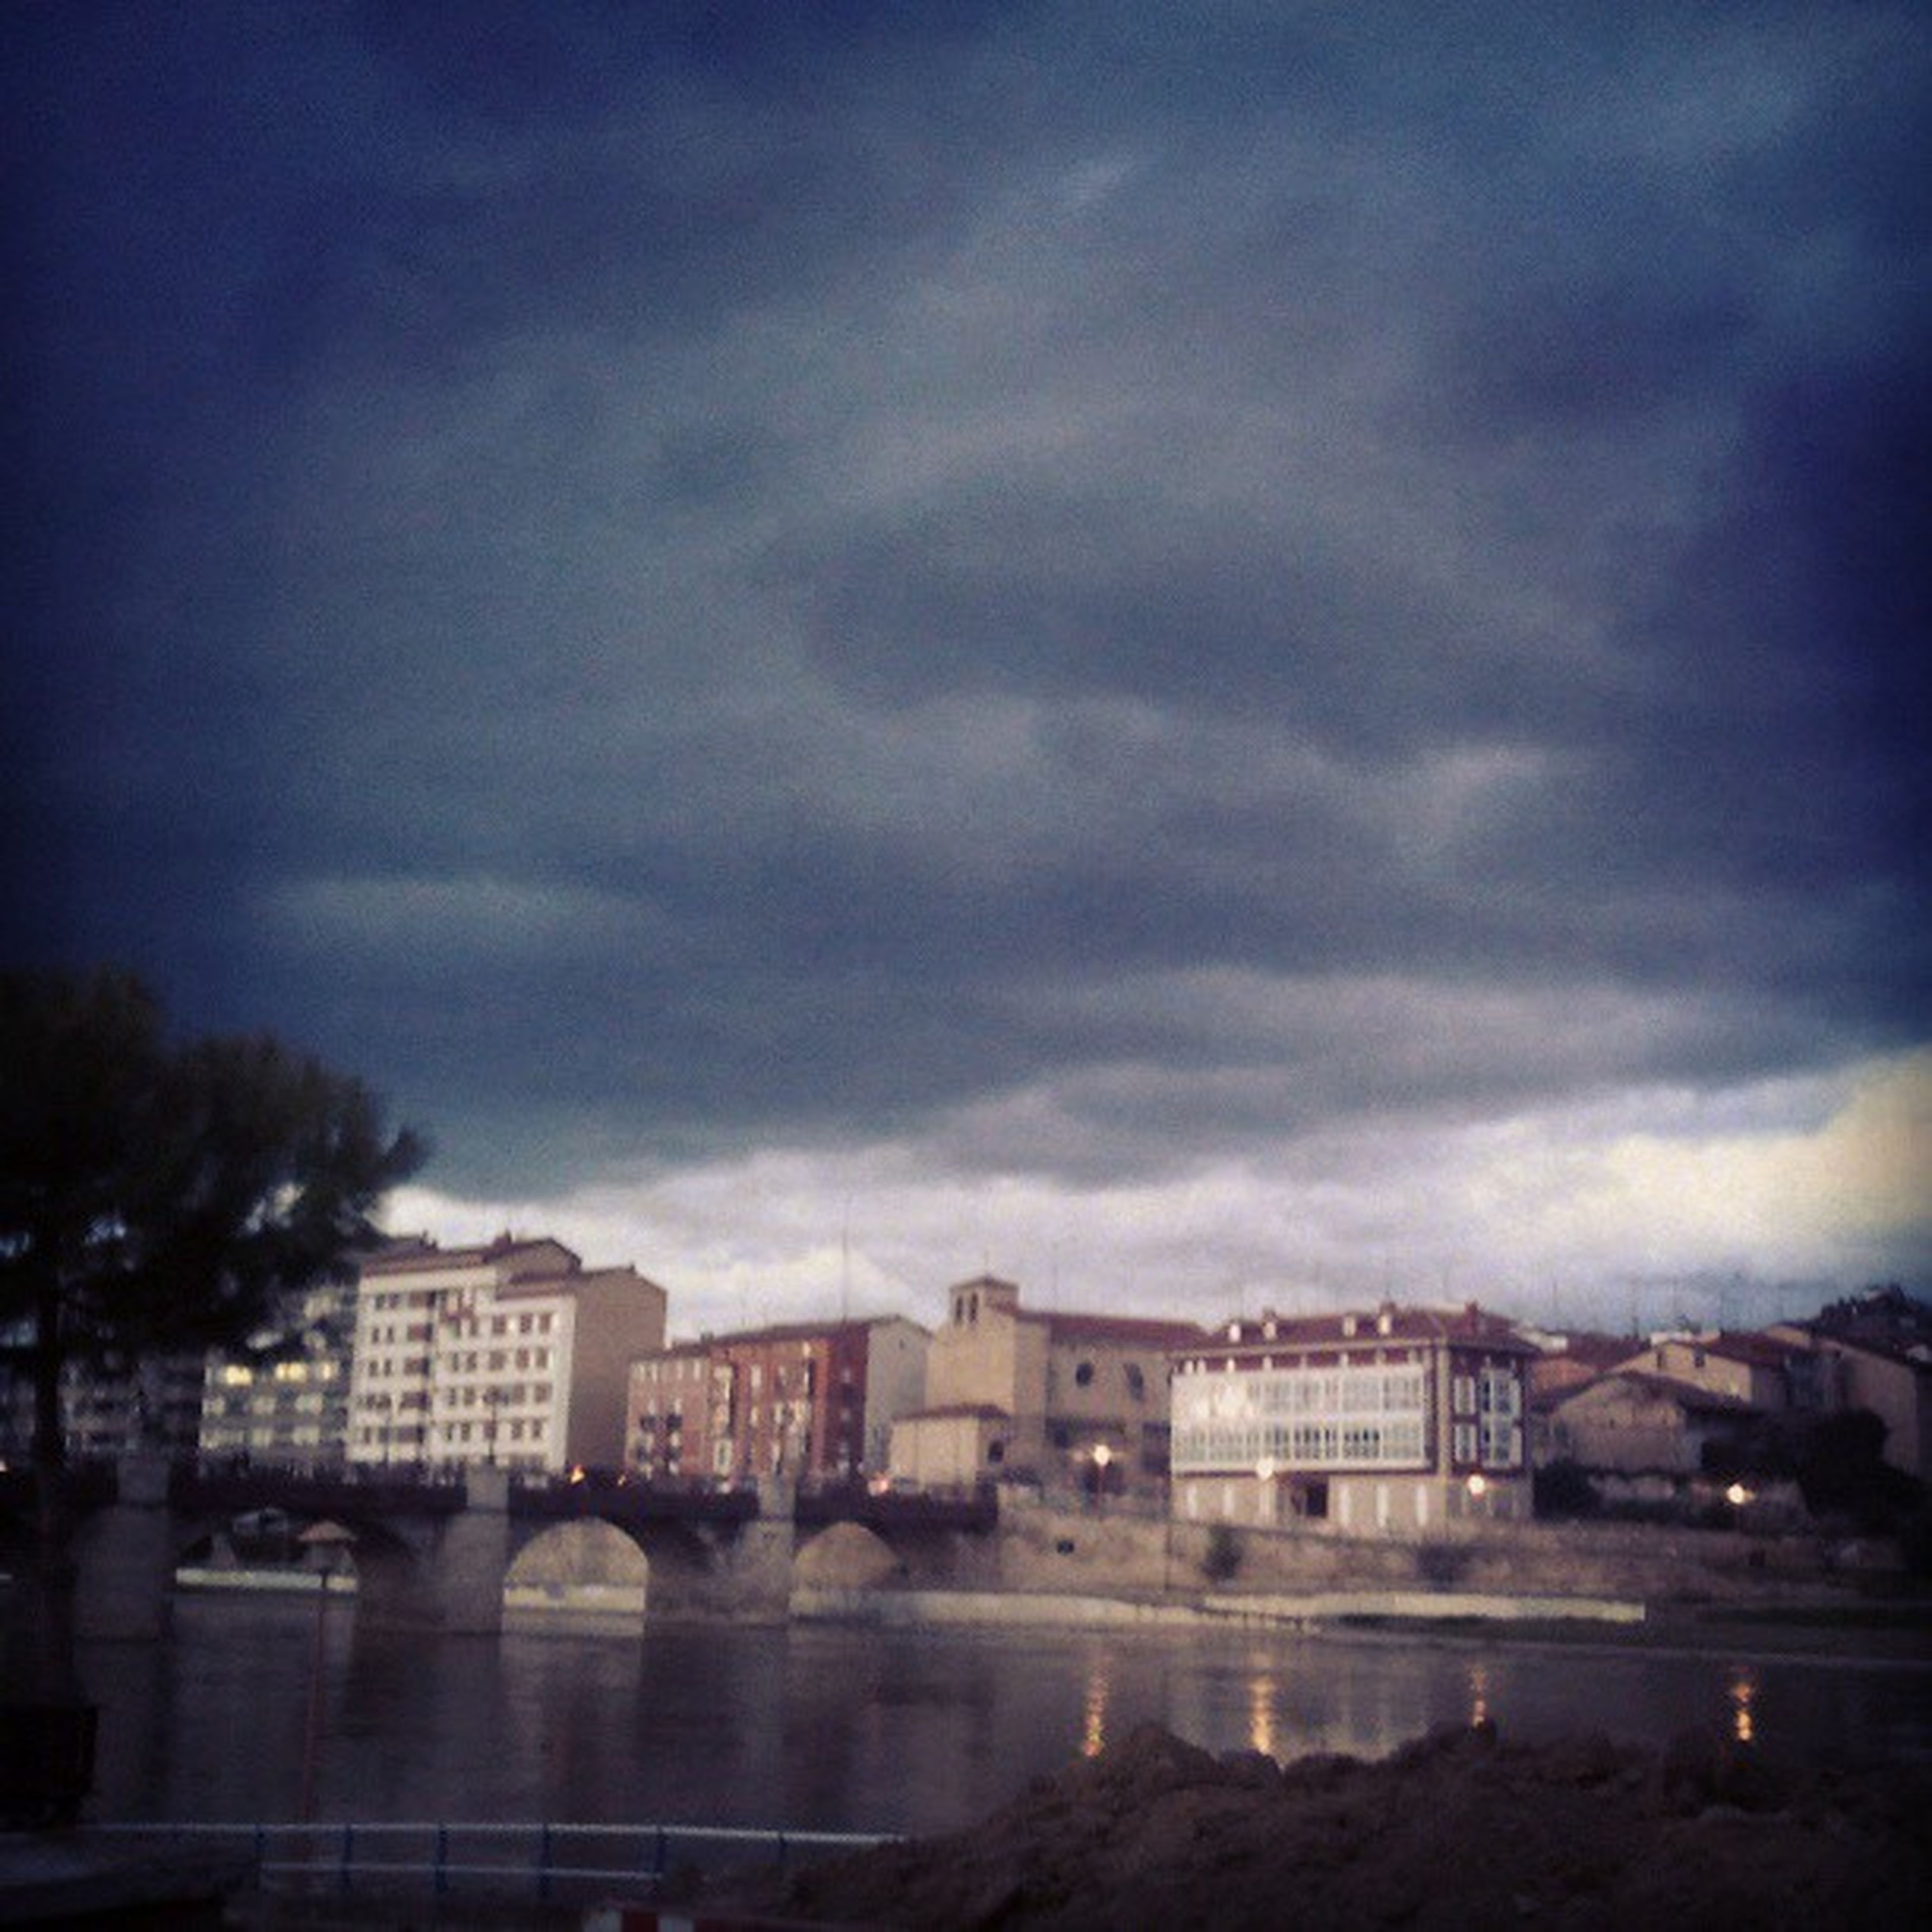 building exterior, architecture, built structure, sky, cloud - sky, cloudy, city, weather, dusk, cloud, water, residential structure, overcast, residential building, building, storm cloud, residential district, cityscape, outdoors, no people